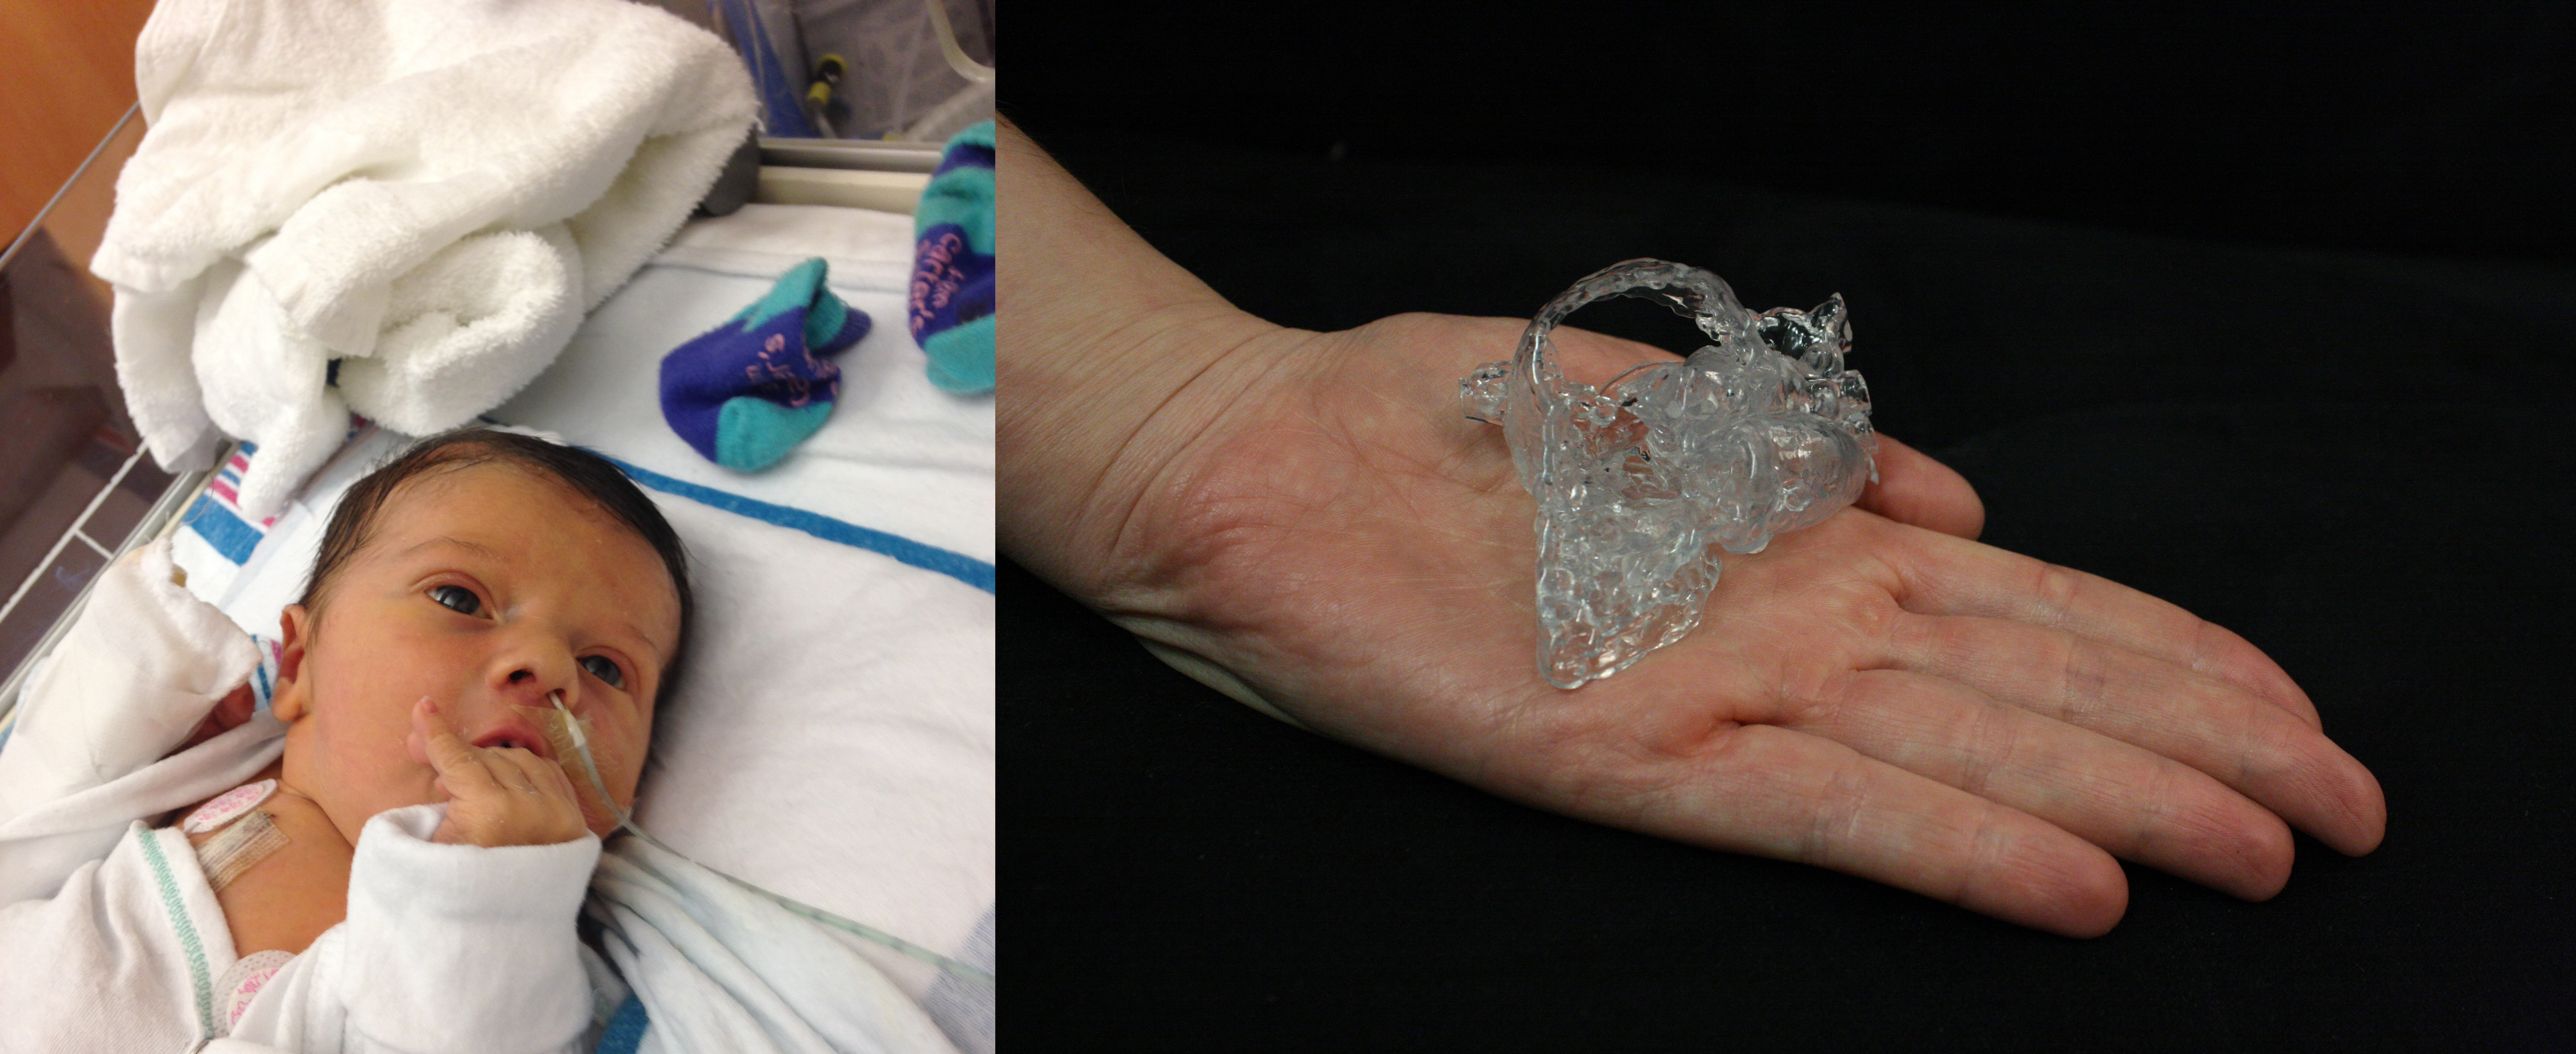 Materialise's 3D printed HeartPrint services